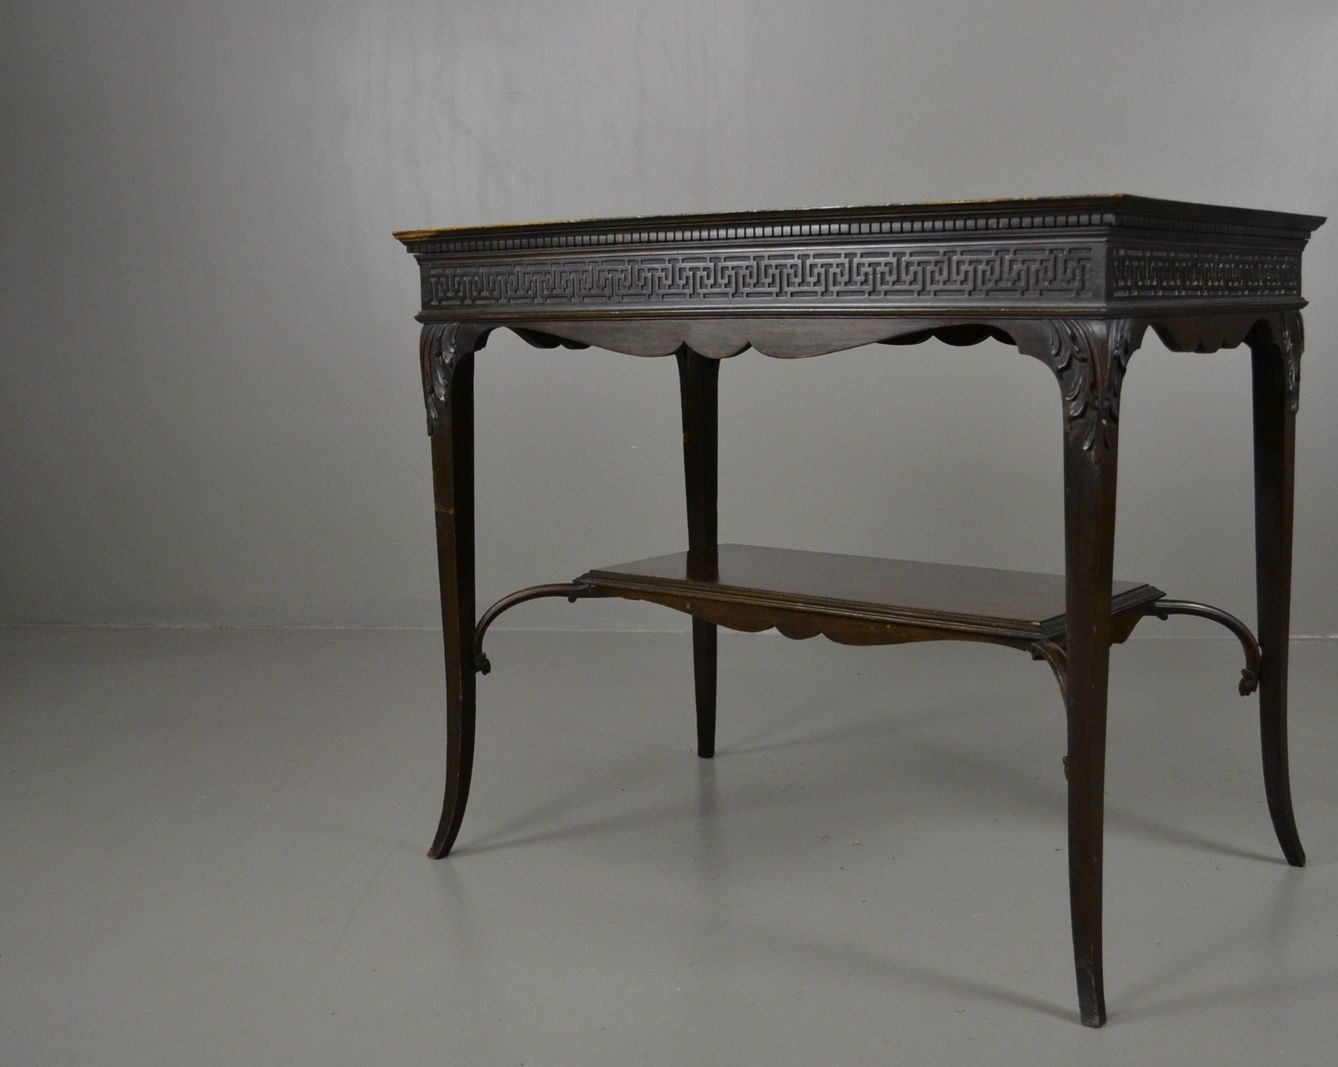 Antique edwardian mahogany console table for sale at pamono for Sofa table rules